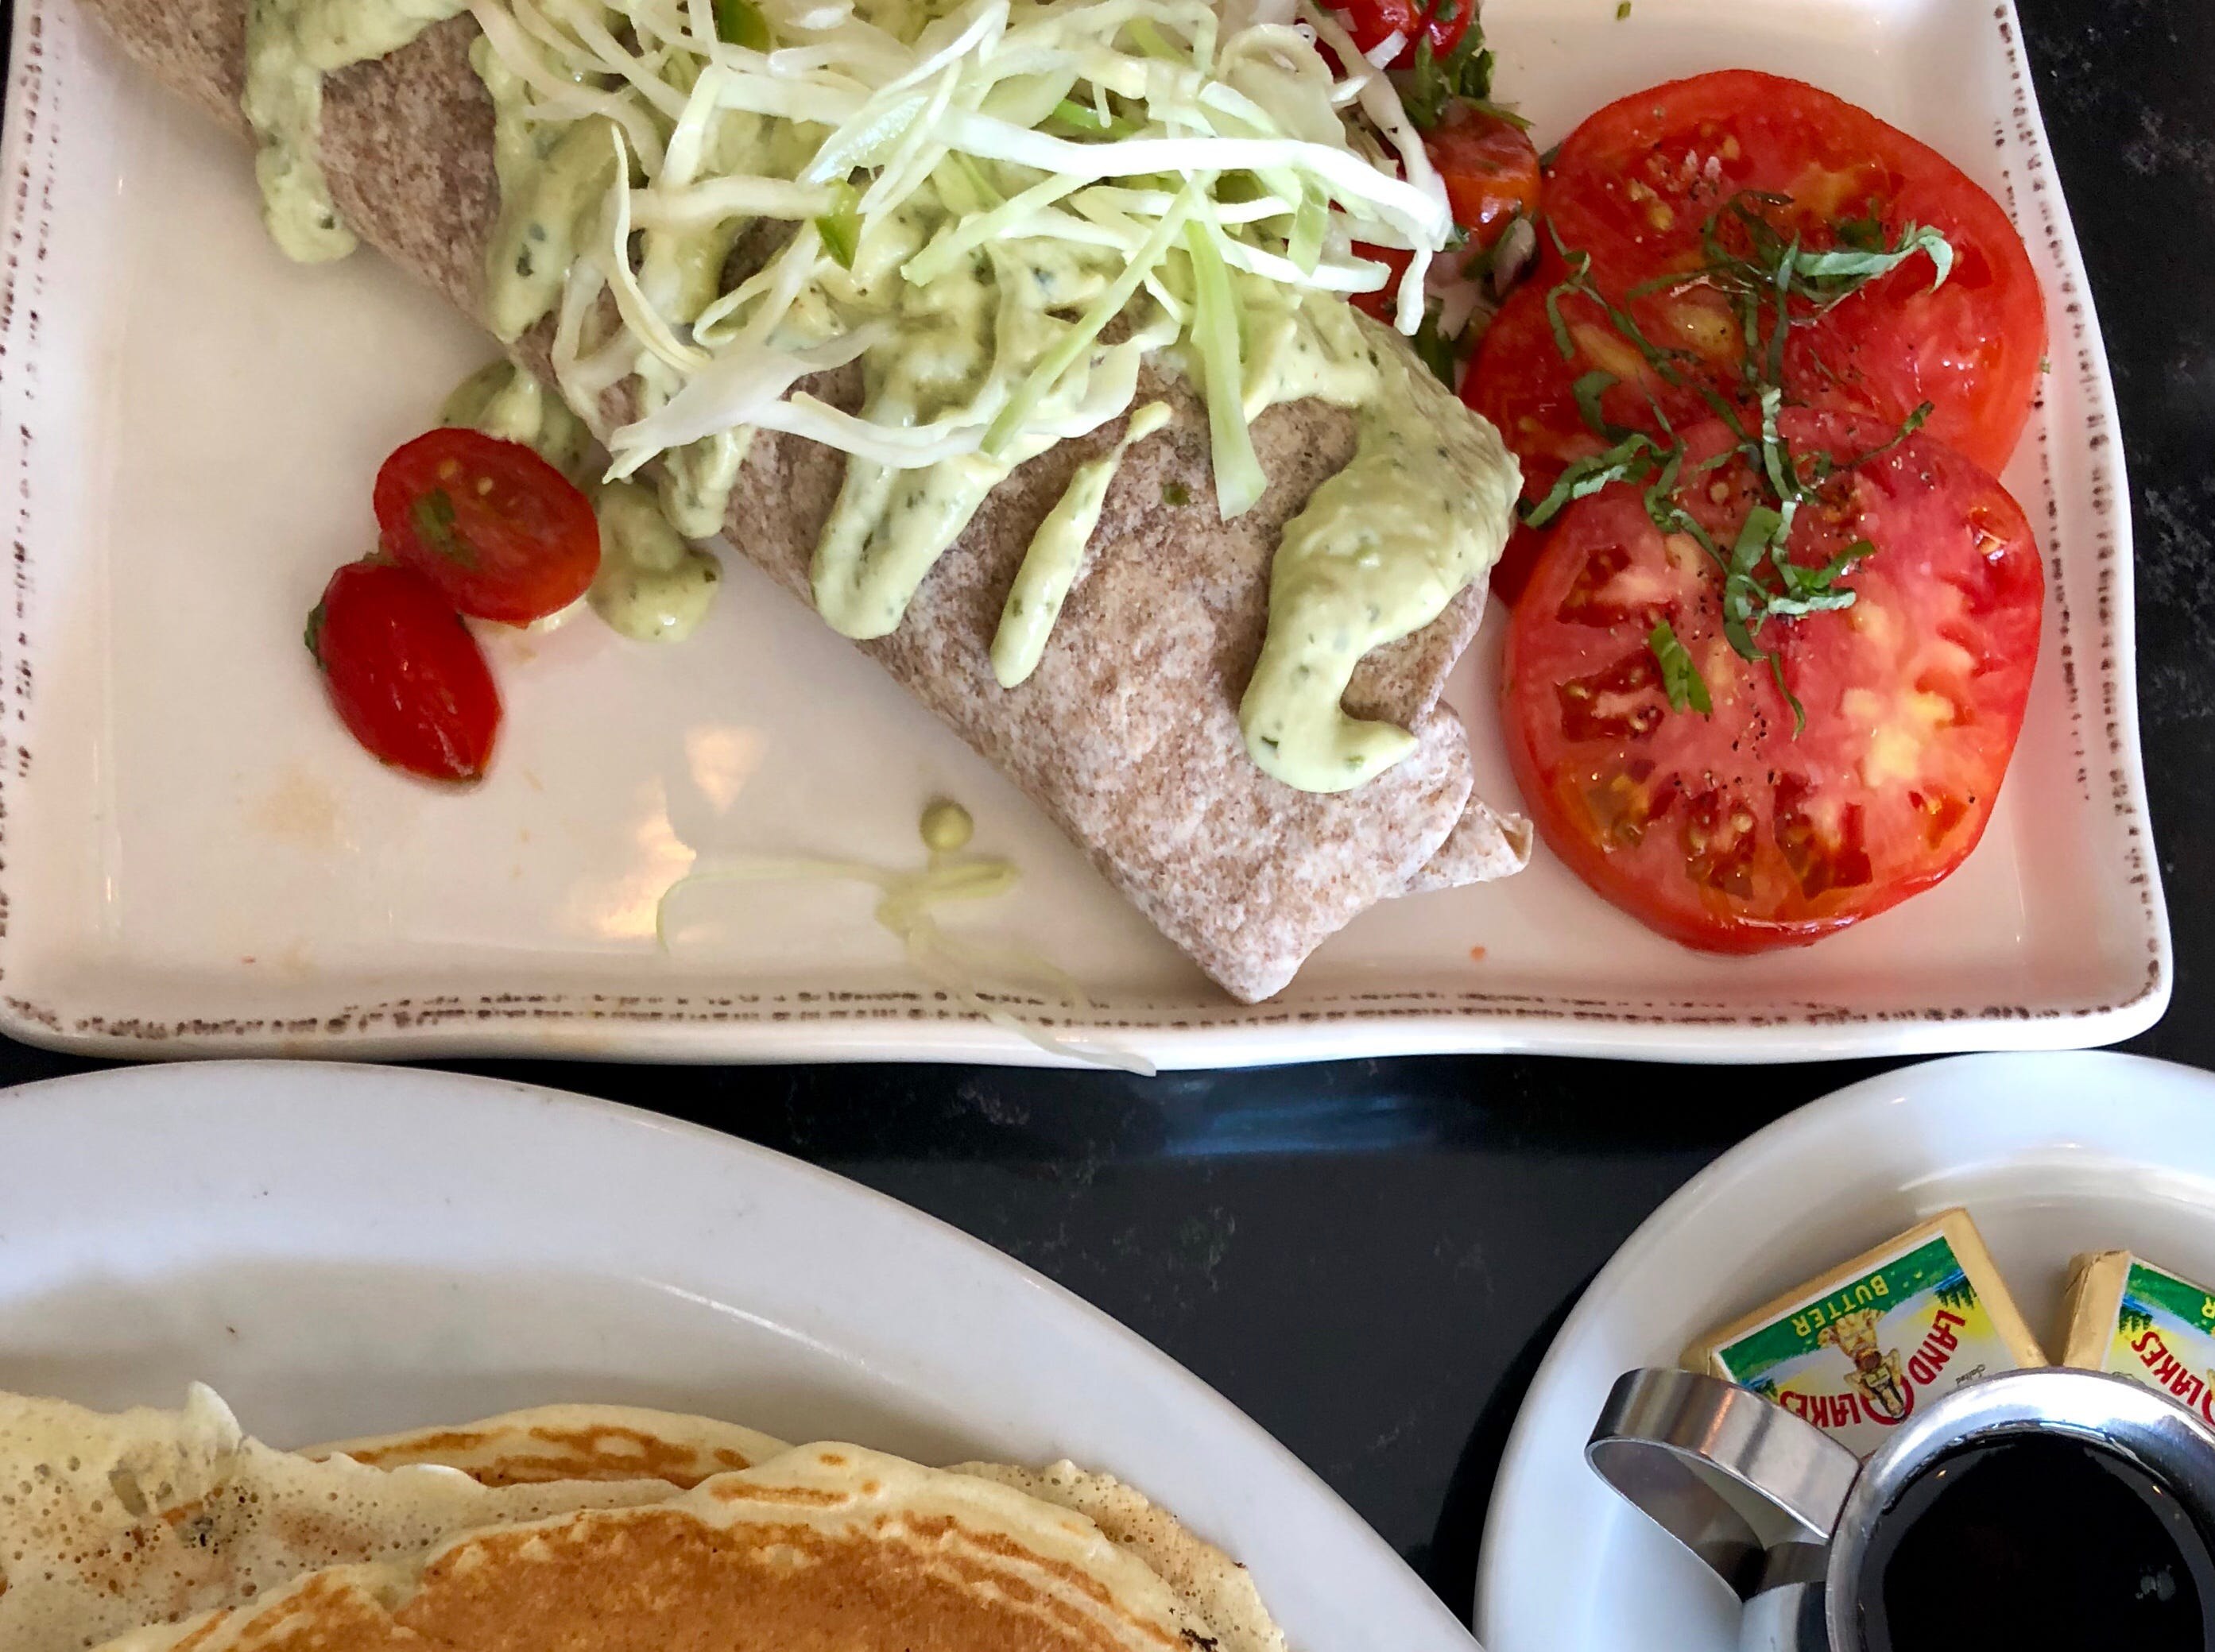 Brunch, including pancakes and breakfast burritos, is served starting at 10 a.m. Sundays at The Local restaurant in North Naples.